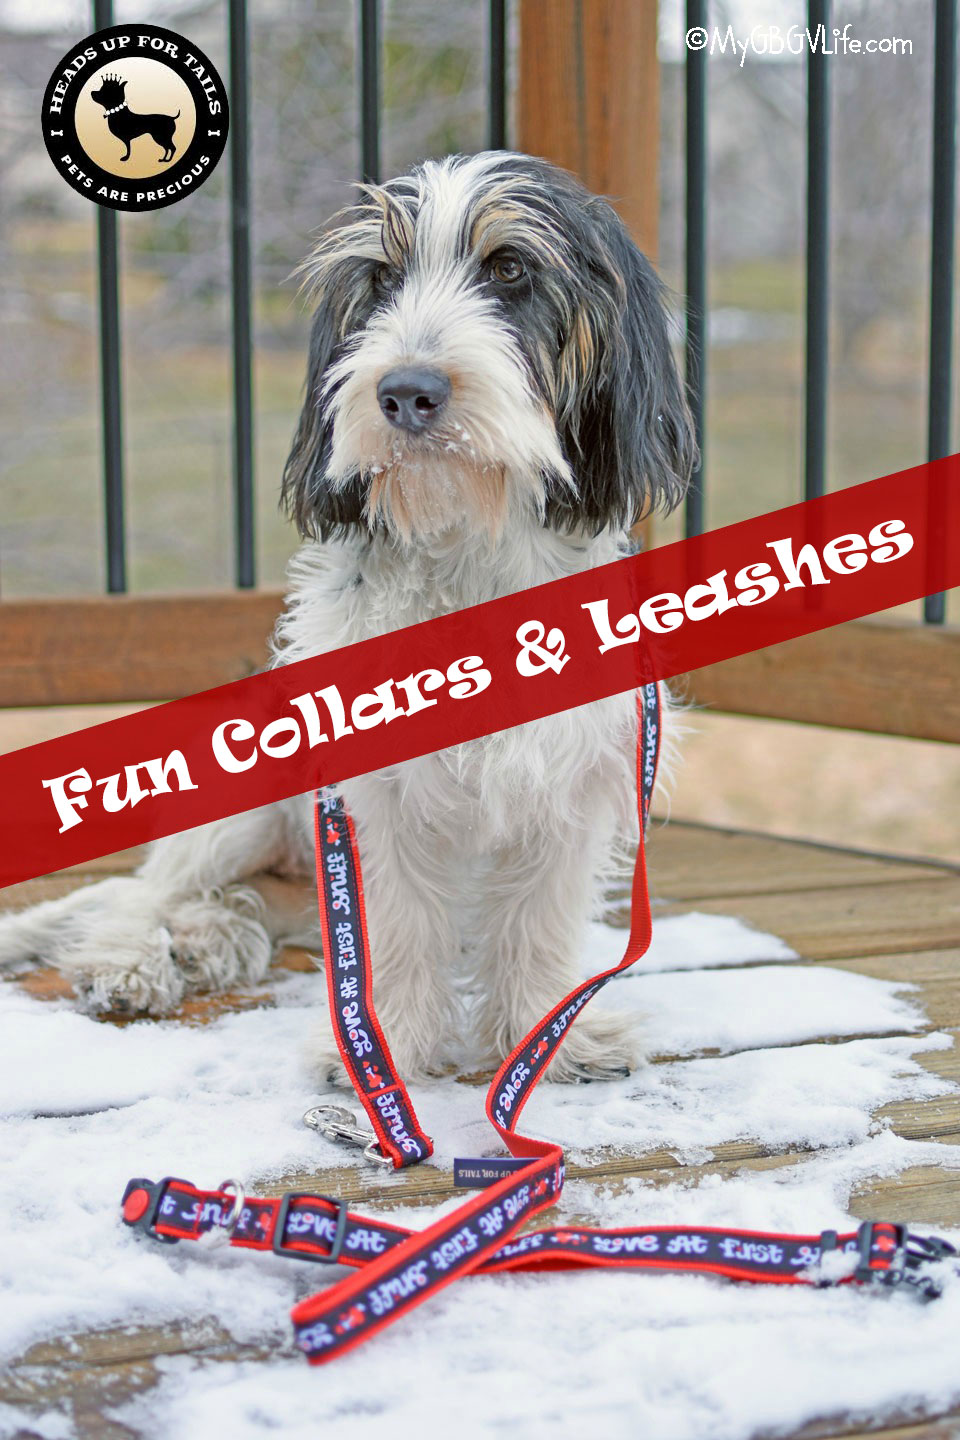 My GBGV Life Fun Collars And Leashes For Your Dog